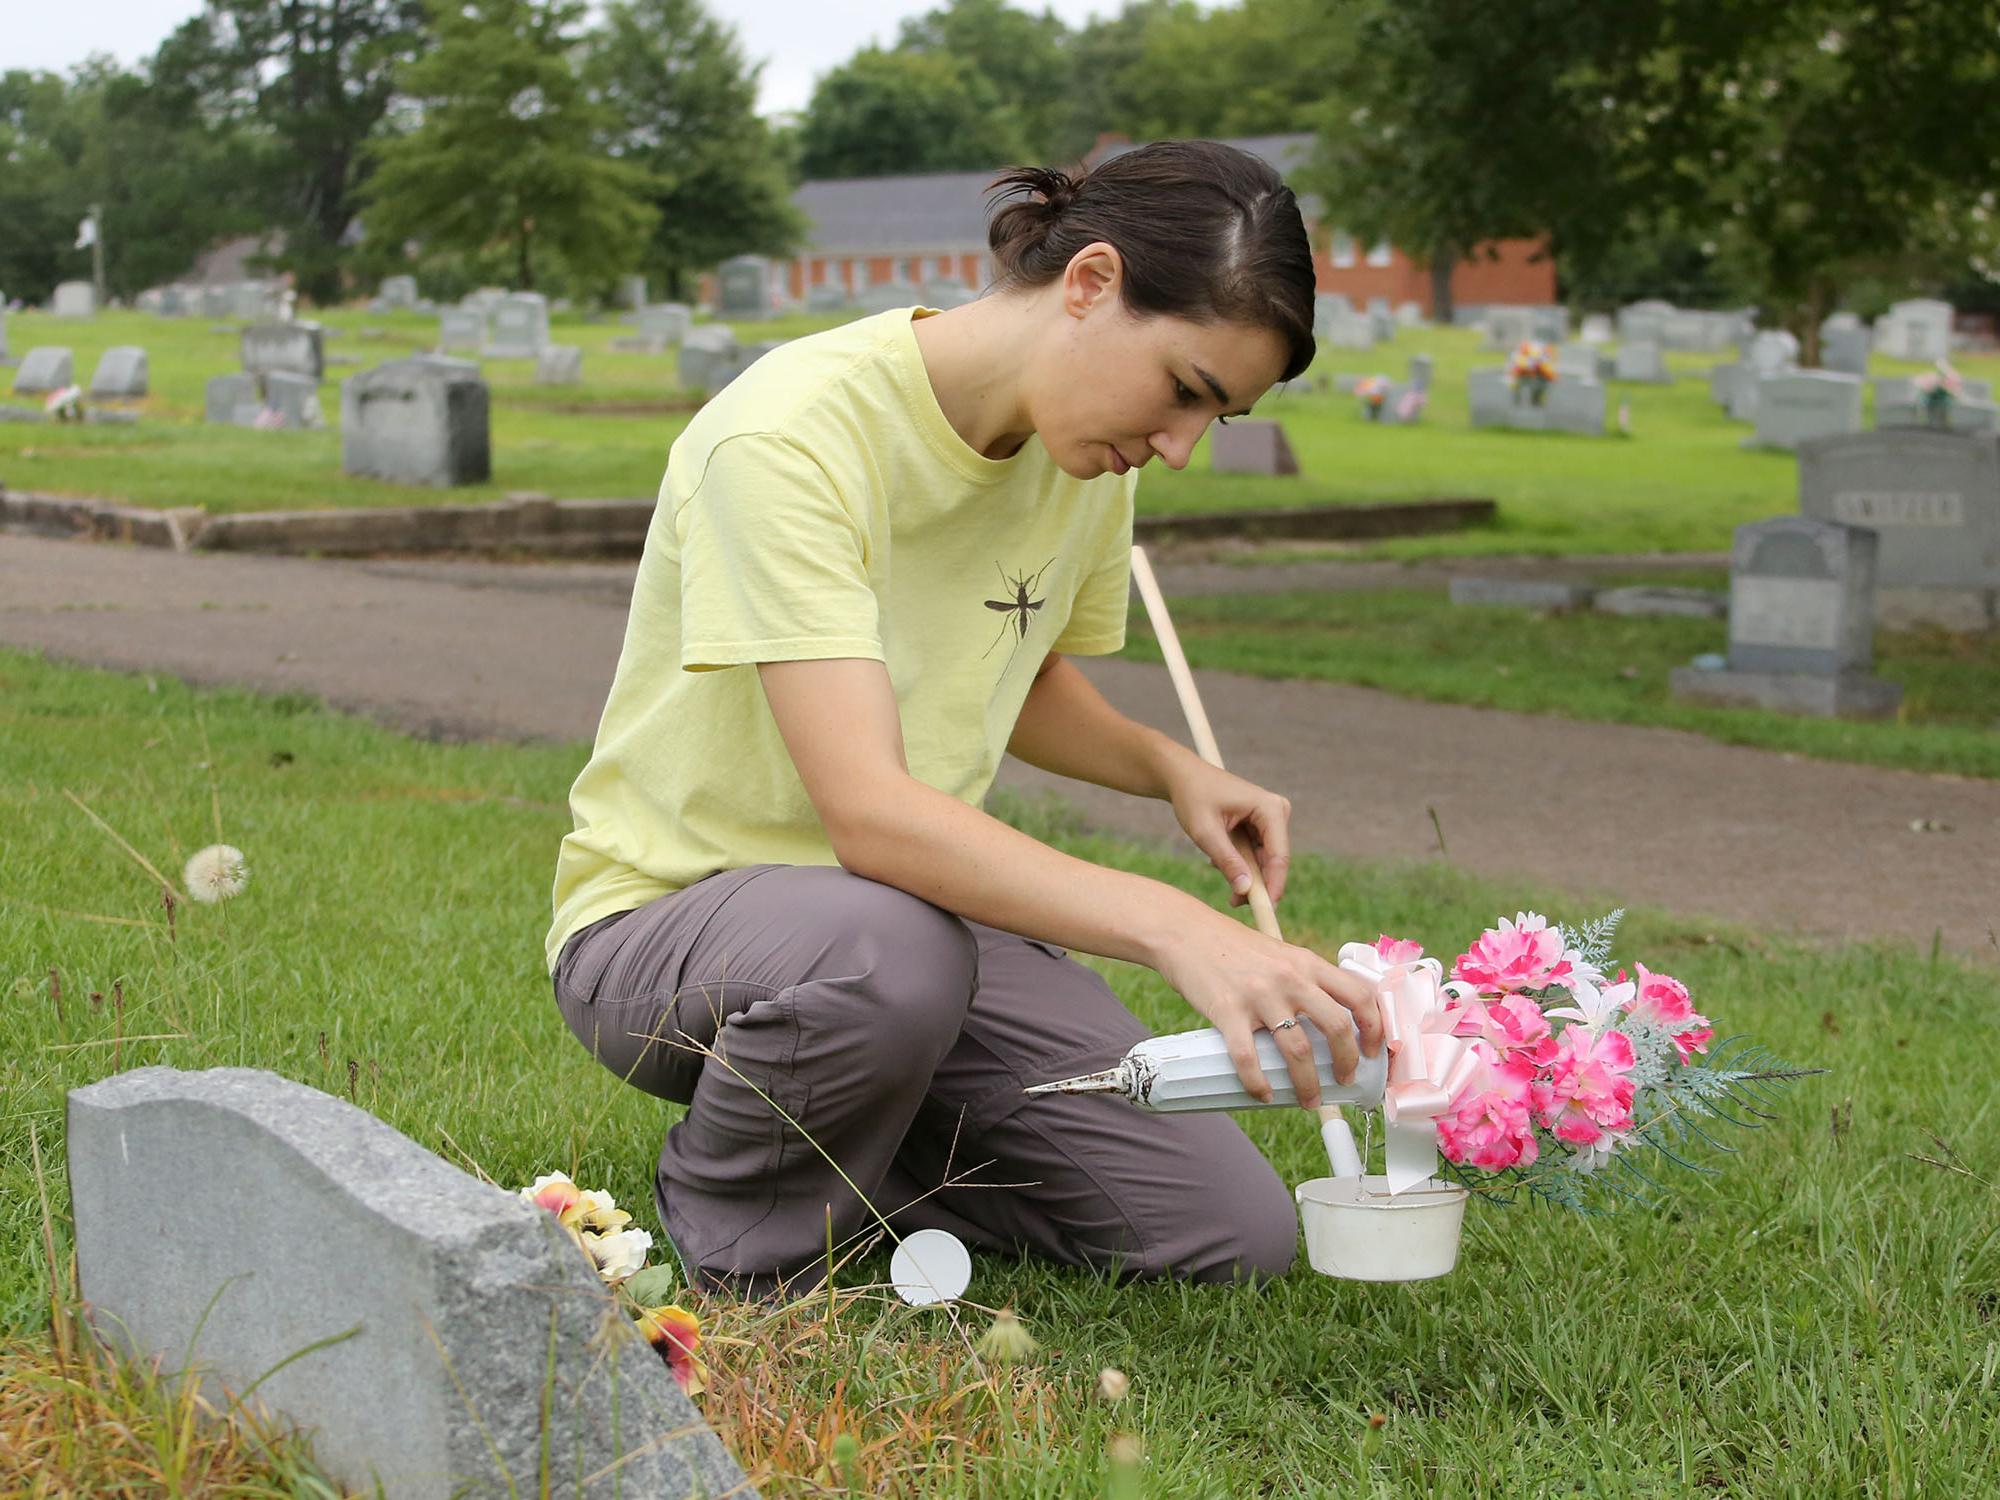 Gail Moraru, a research associate with the Mississippi State University Extension Service, collects mosquito larvae in water from a vase in Odd Fellows Cemetery in Starkville, Mississippi, on Aug. 10, 2016. Moraru and others workers with MSU Extension are collecting samples in 41 north Mississippi counties in an effort to pinpoint potential Zika-affected areas. (Photo by MSU Extension Service/Kat Lawrence)